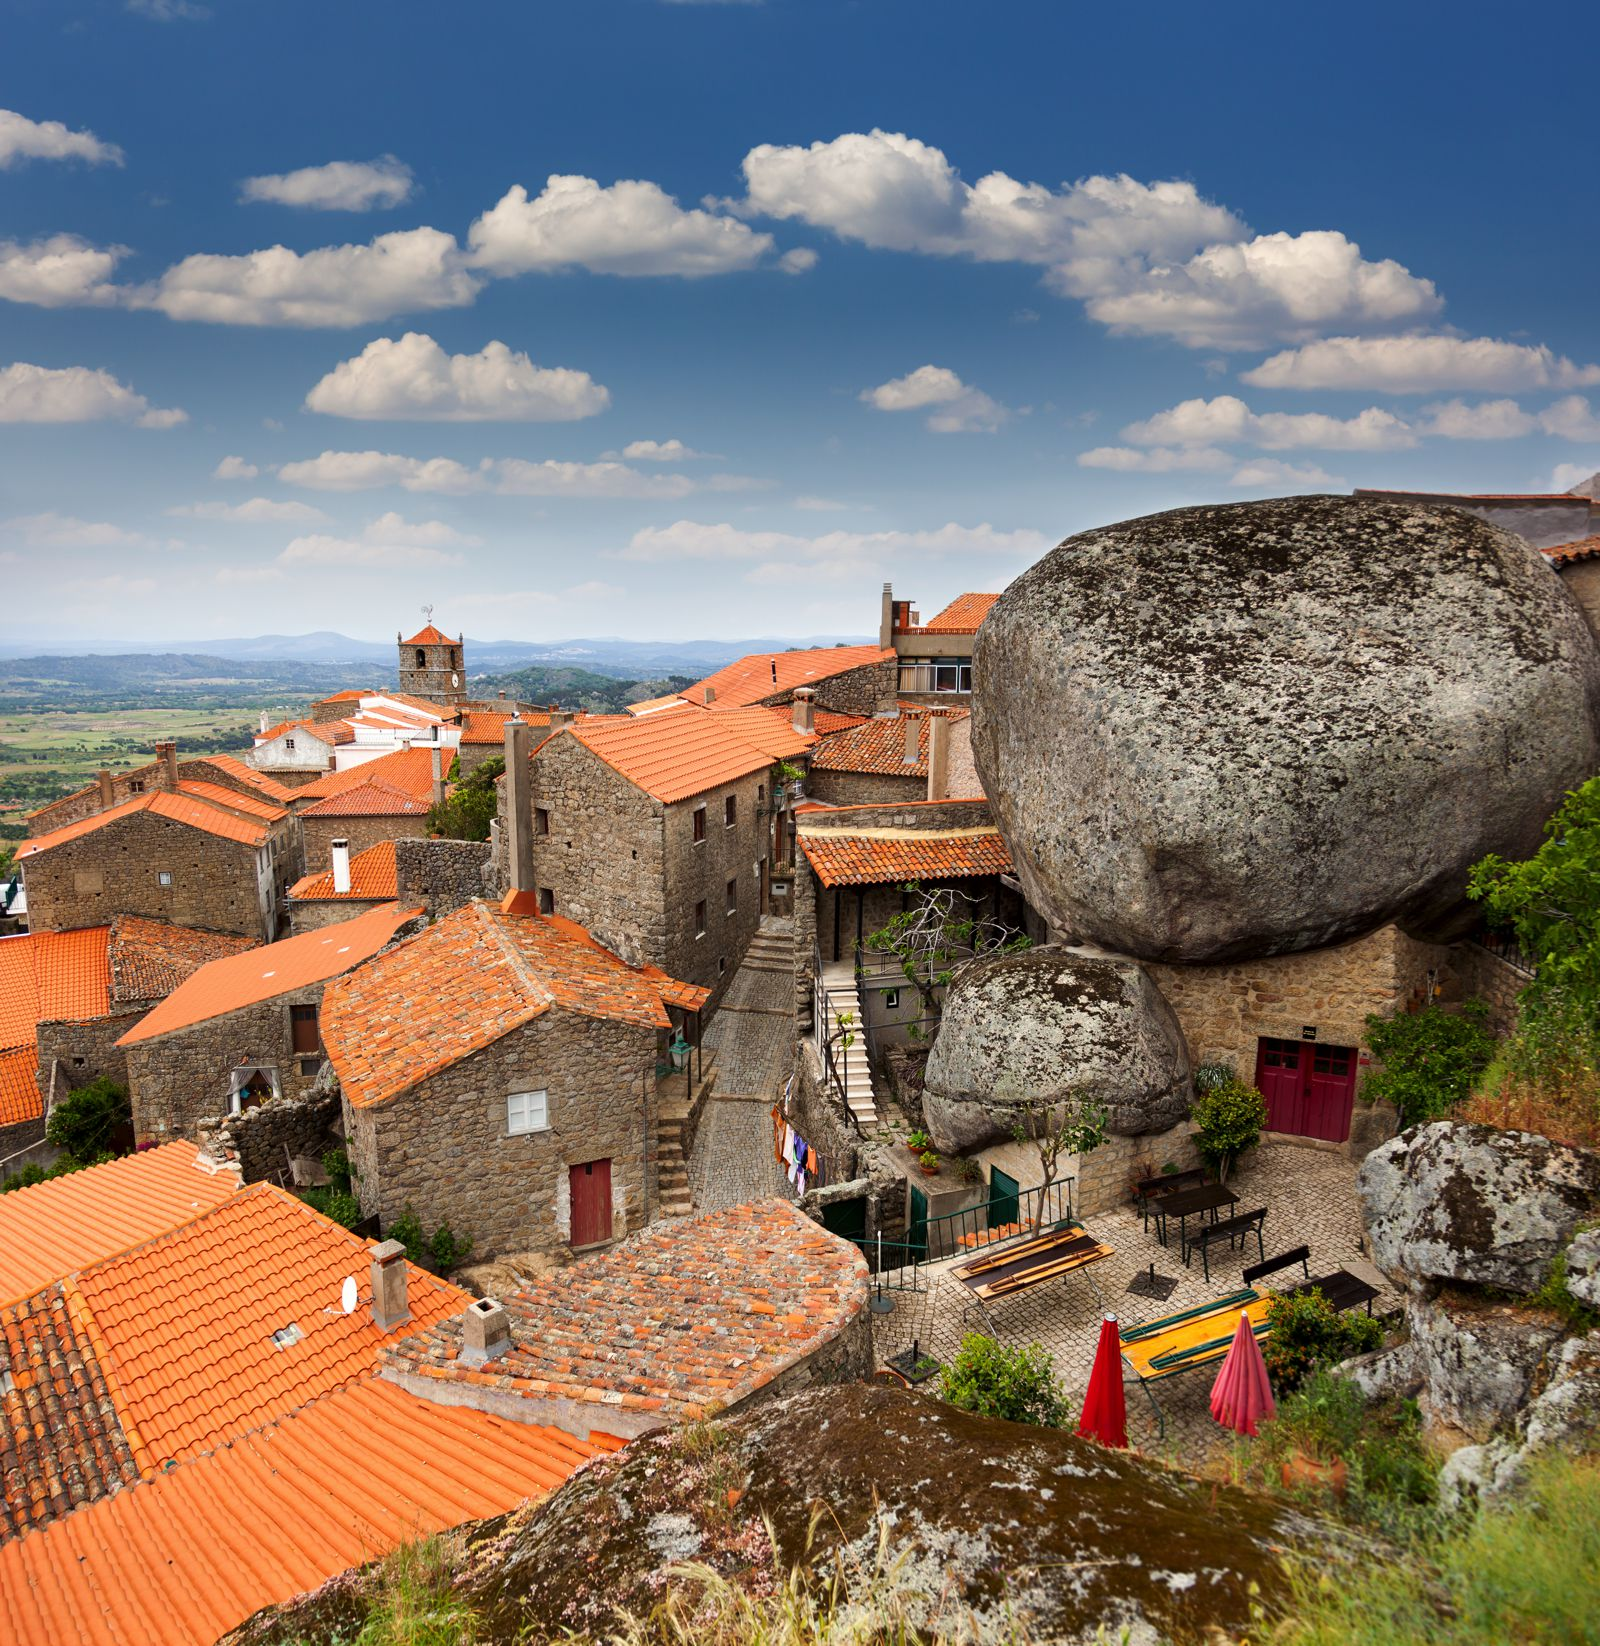 Best Places Travel Portugal: 15 Stunning Places You Have To See In Portugal